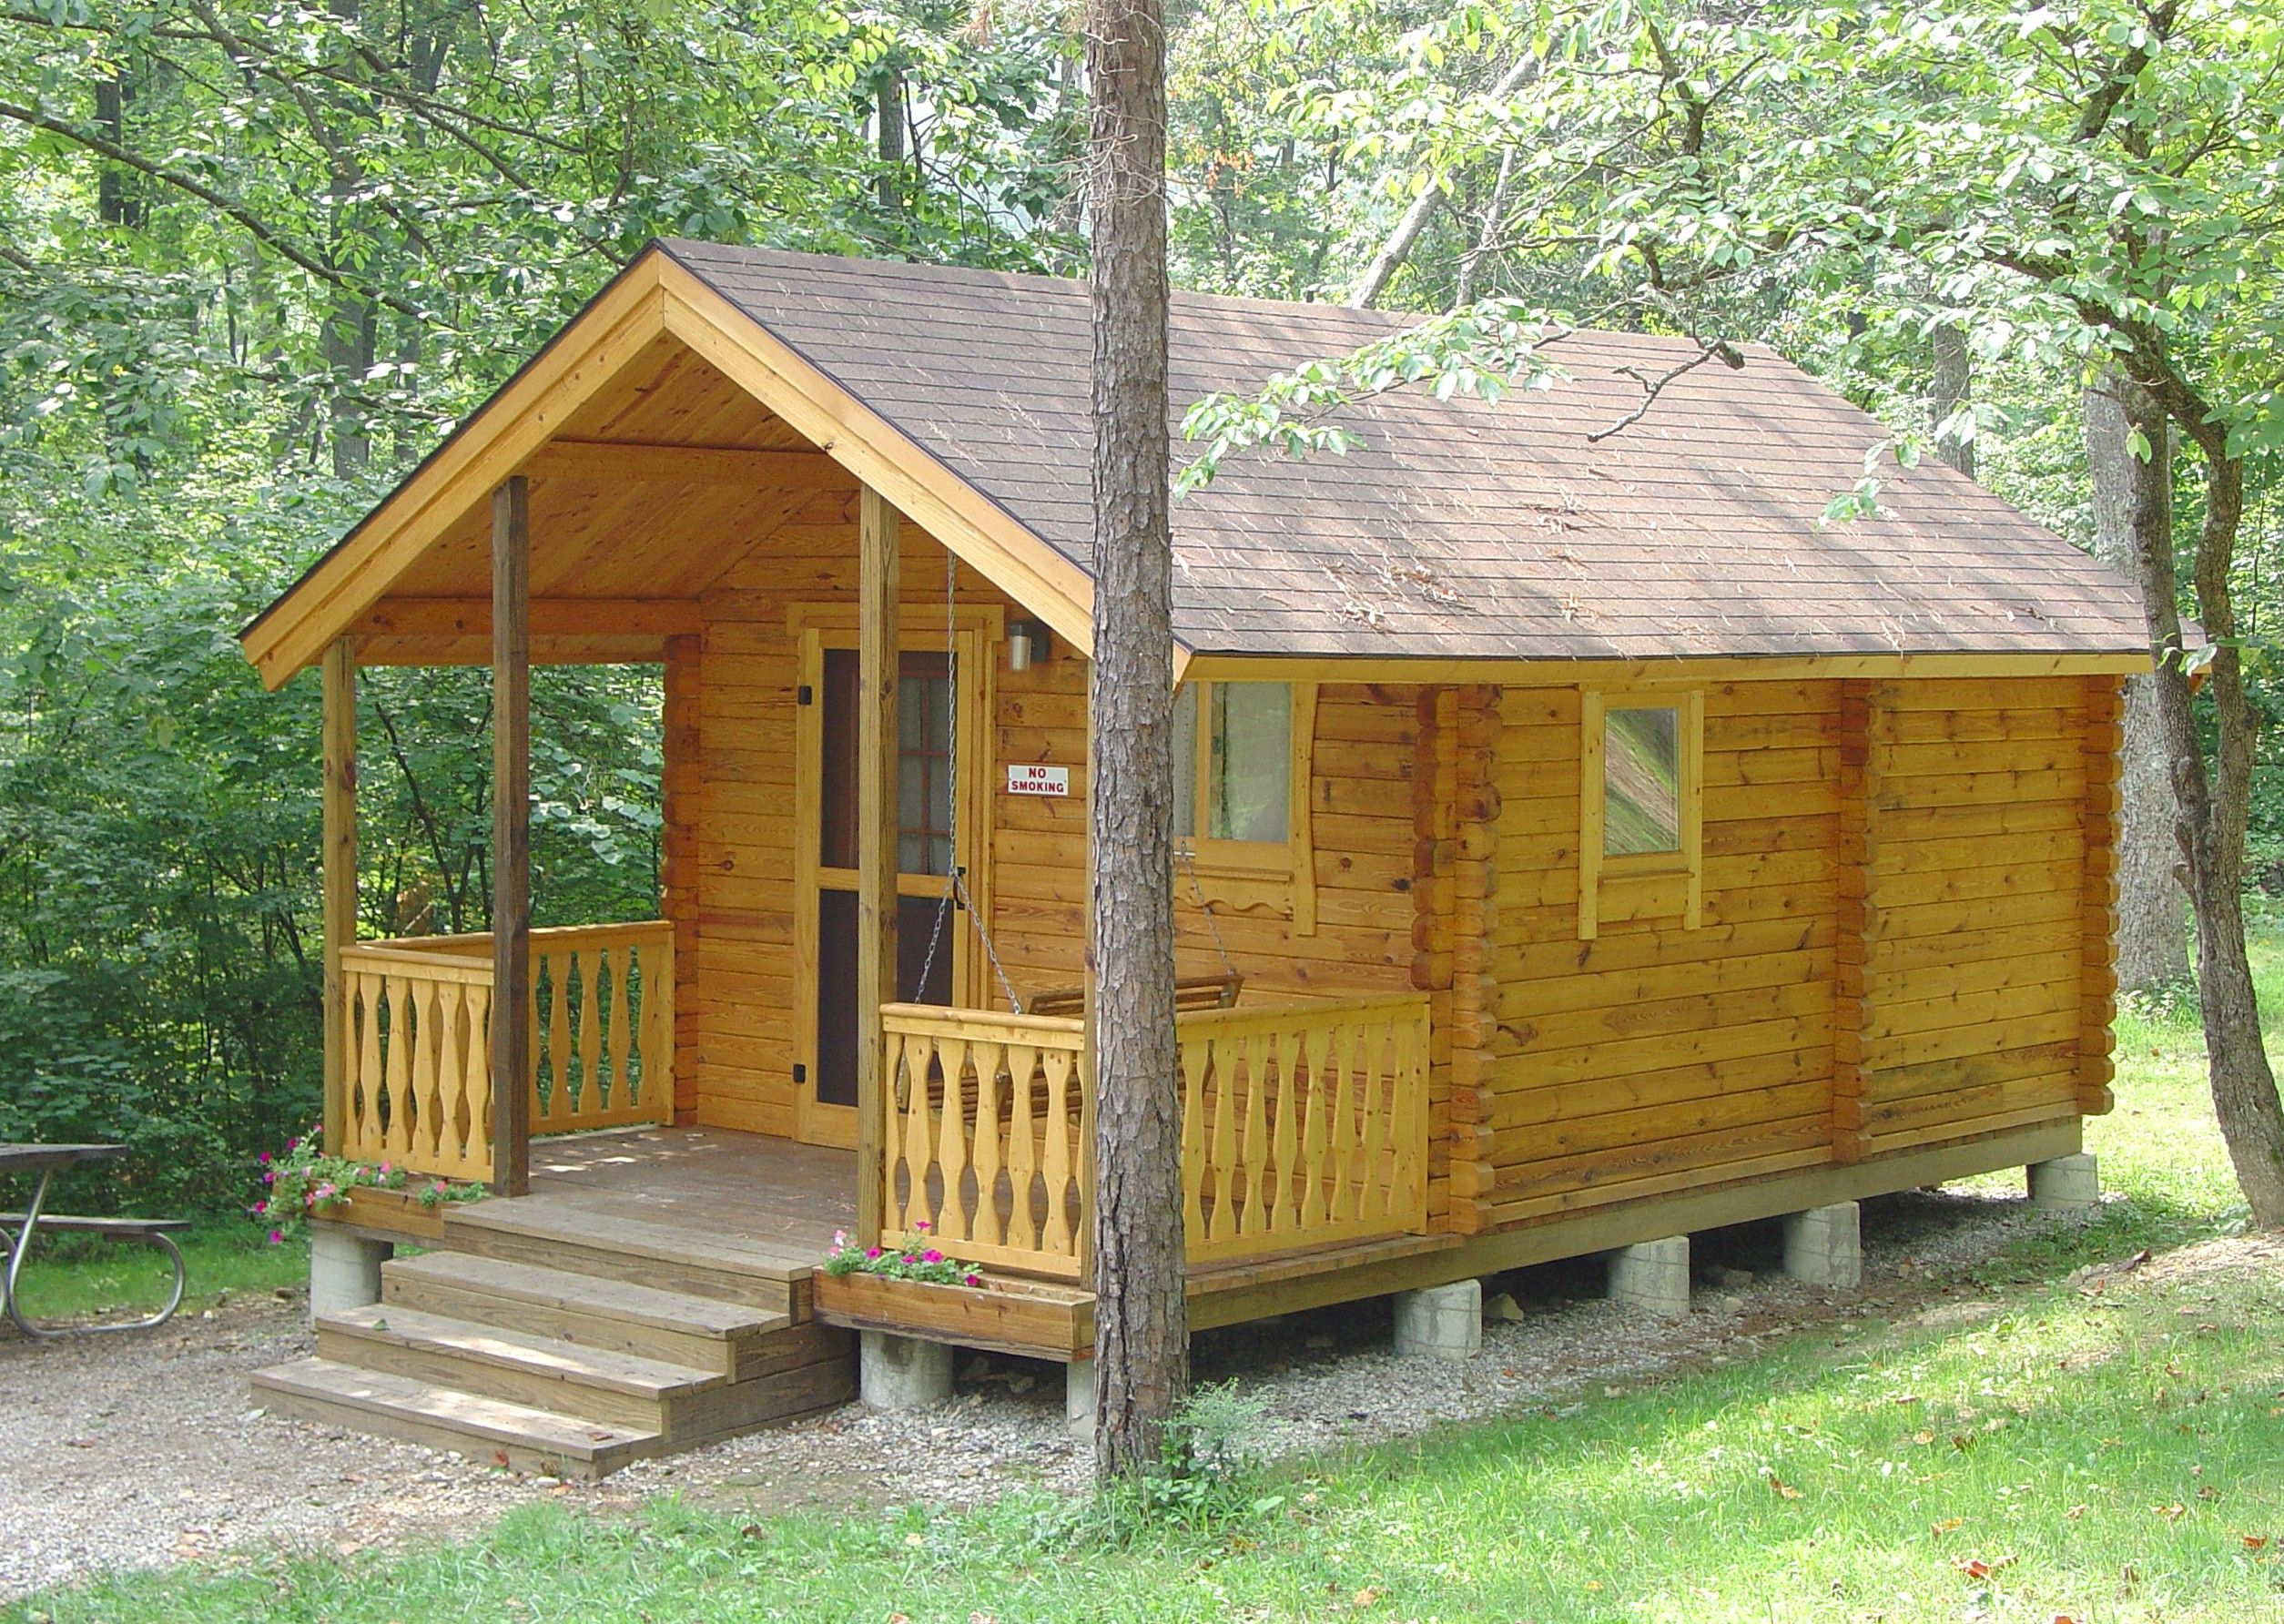 pond cabins img with grove on heart of the acres ohio private hills in hickory hocking fishing